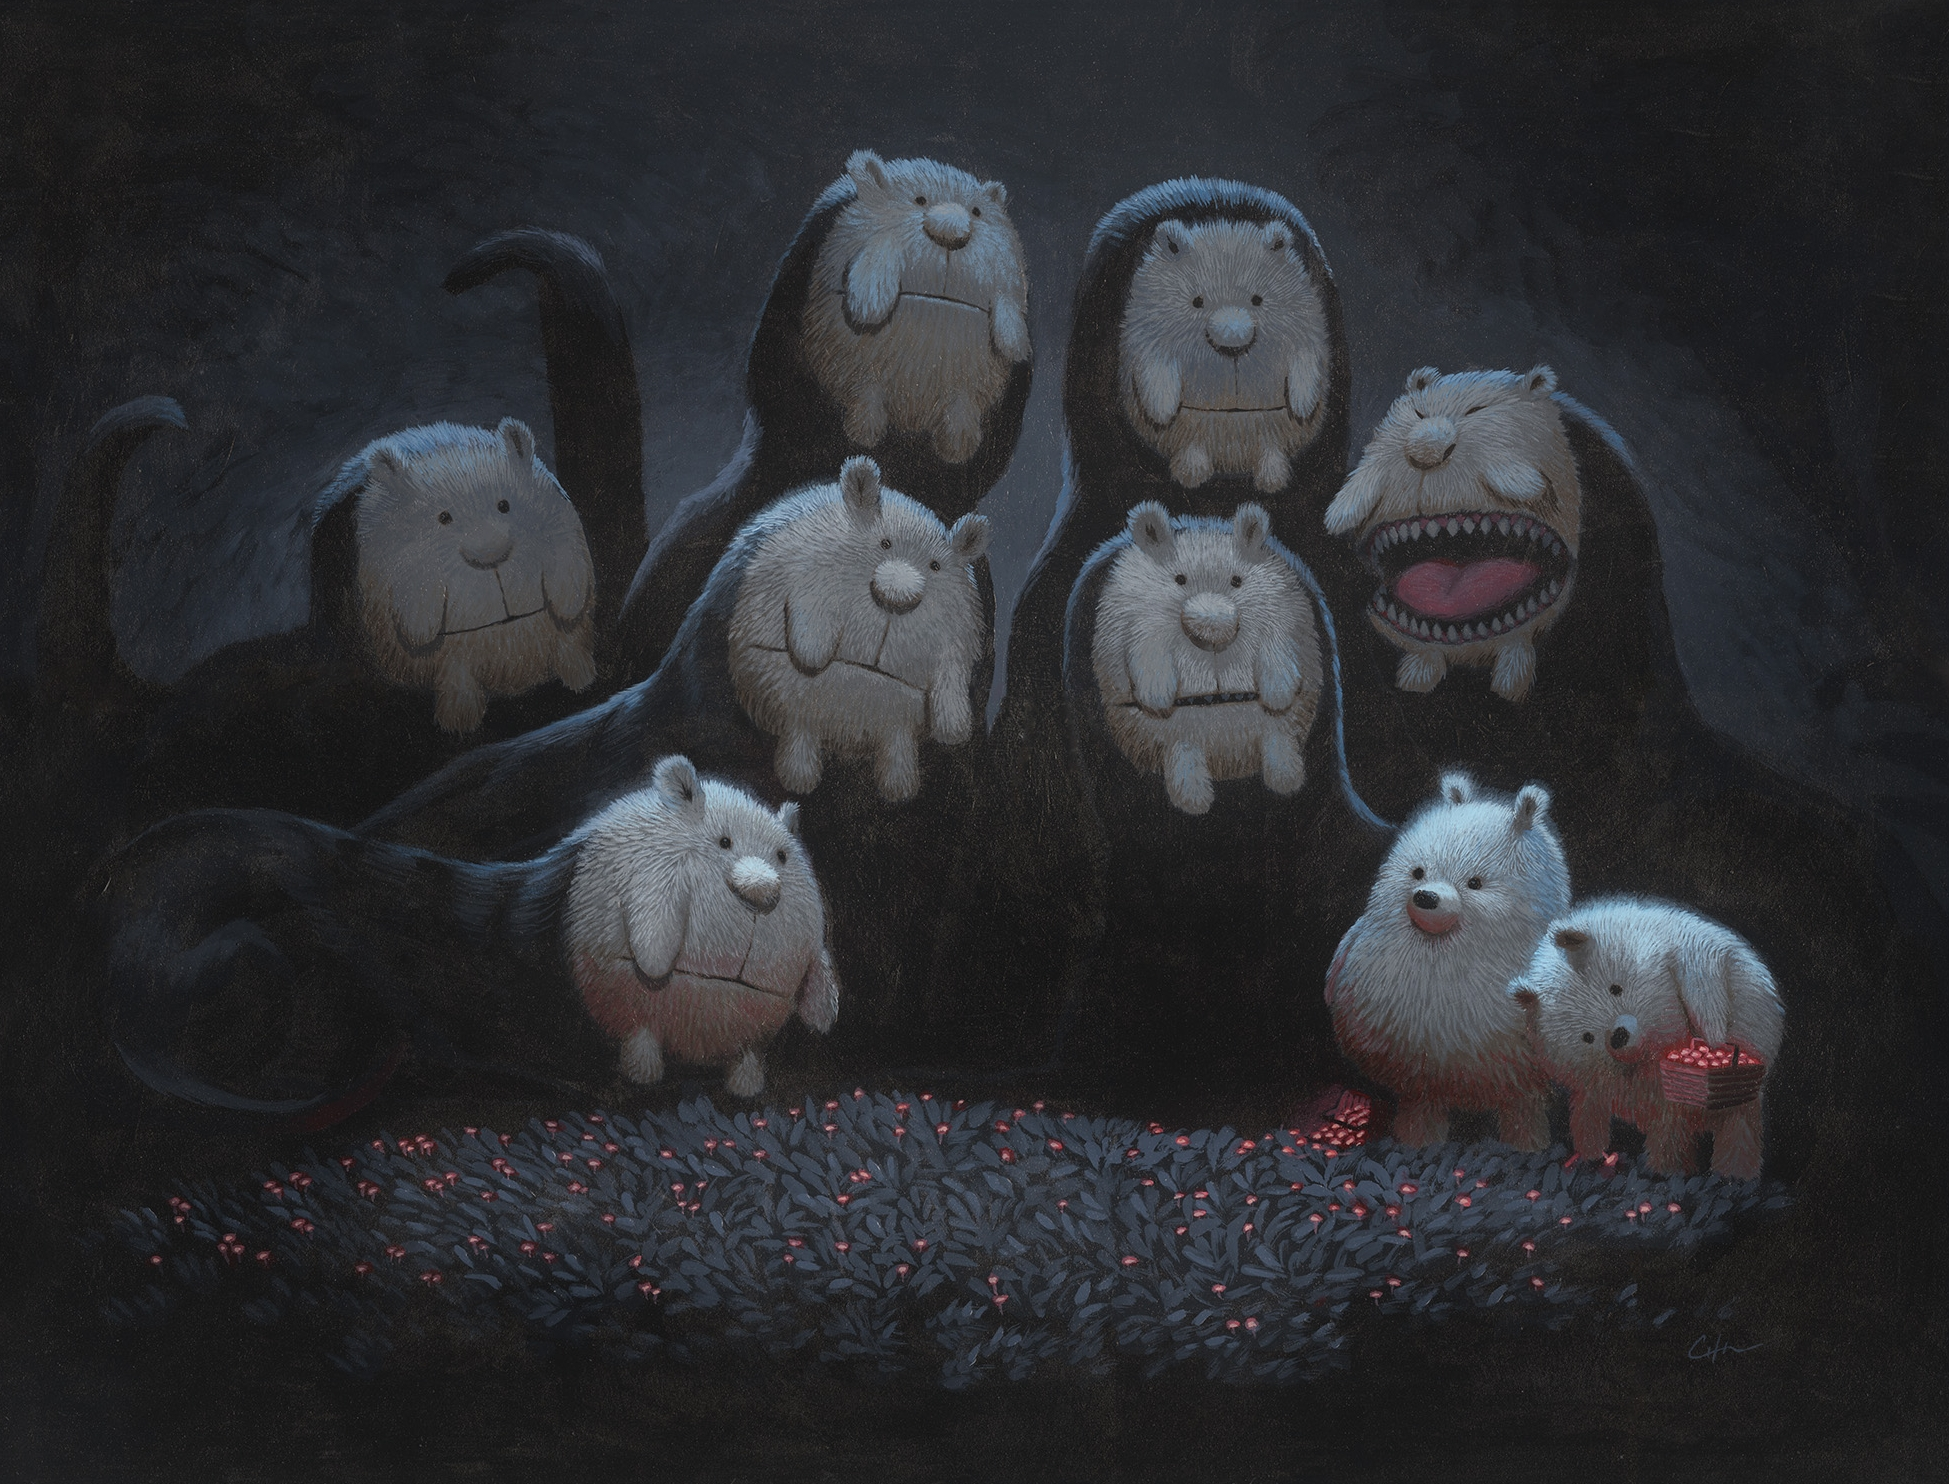 RGB_Arludik Teddy Bear Monsters.jpg